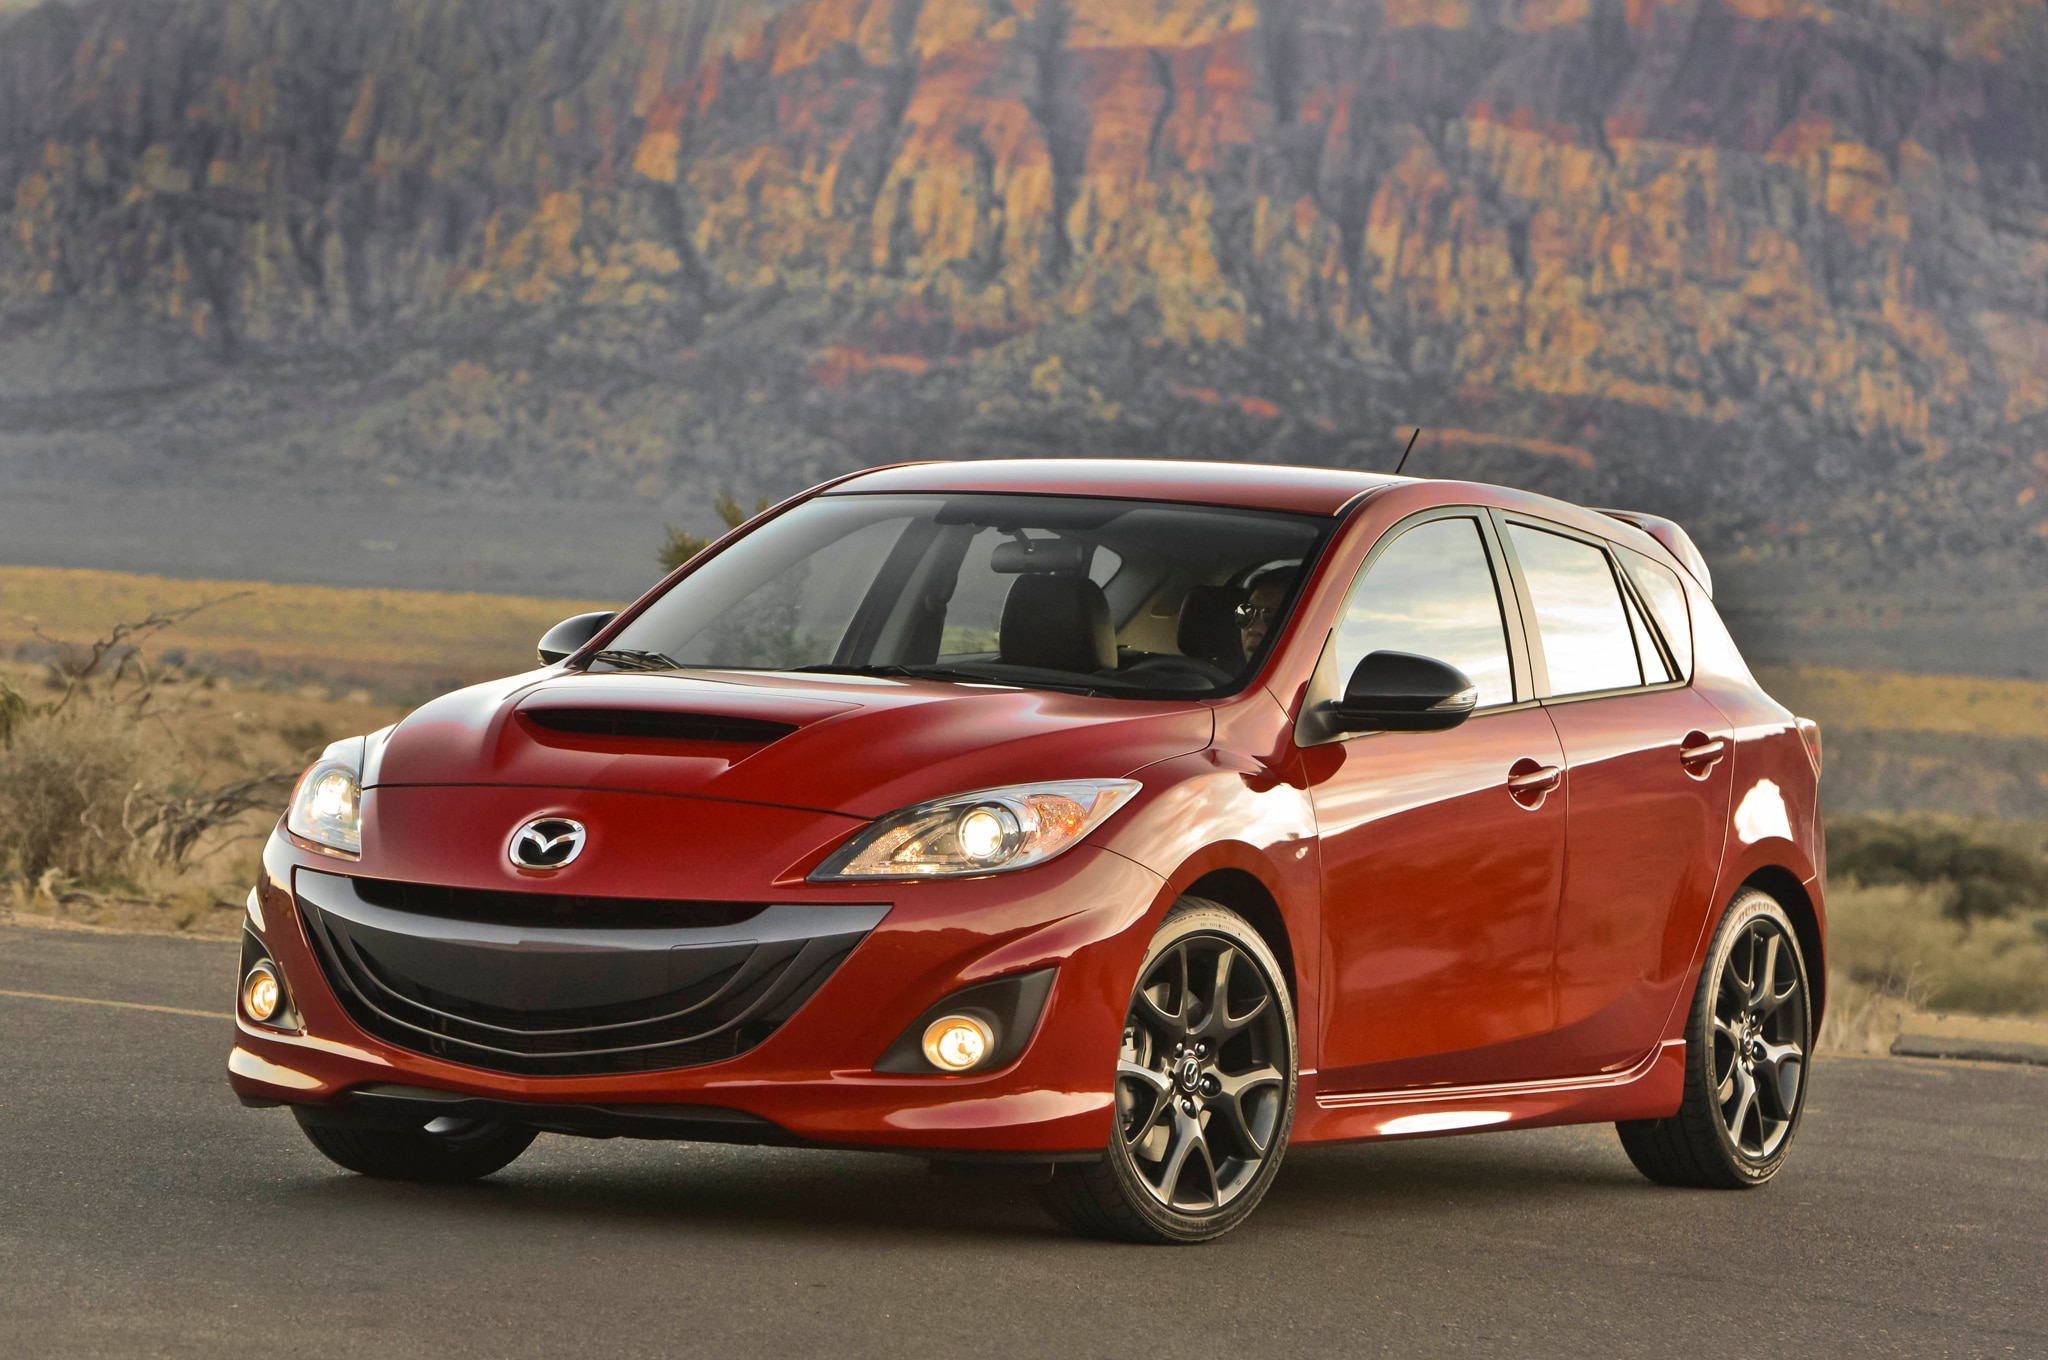 2013 Mazda MAZDASPEED3 Front Three Quarters 11